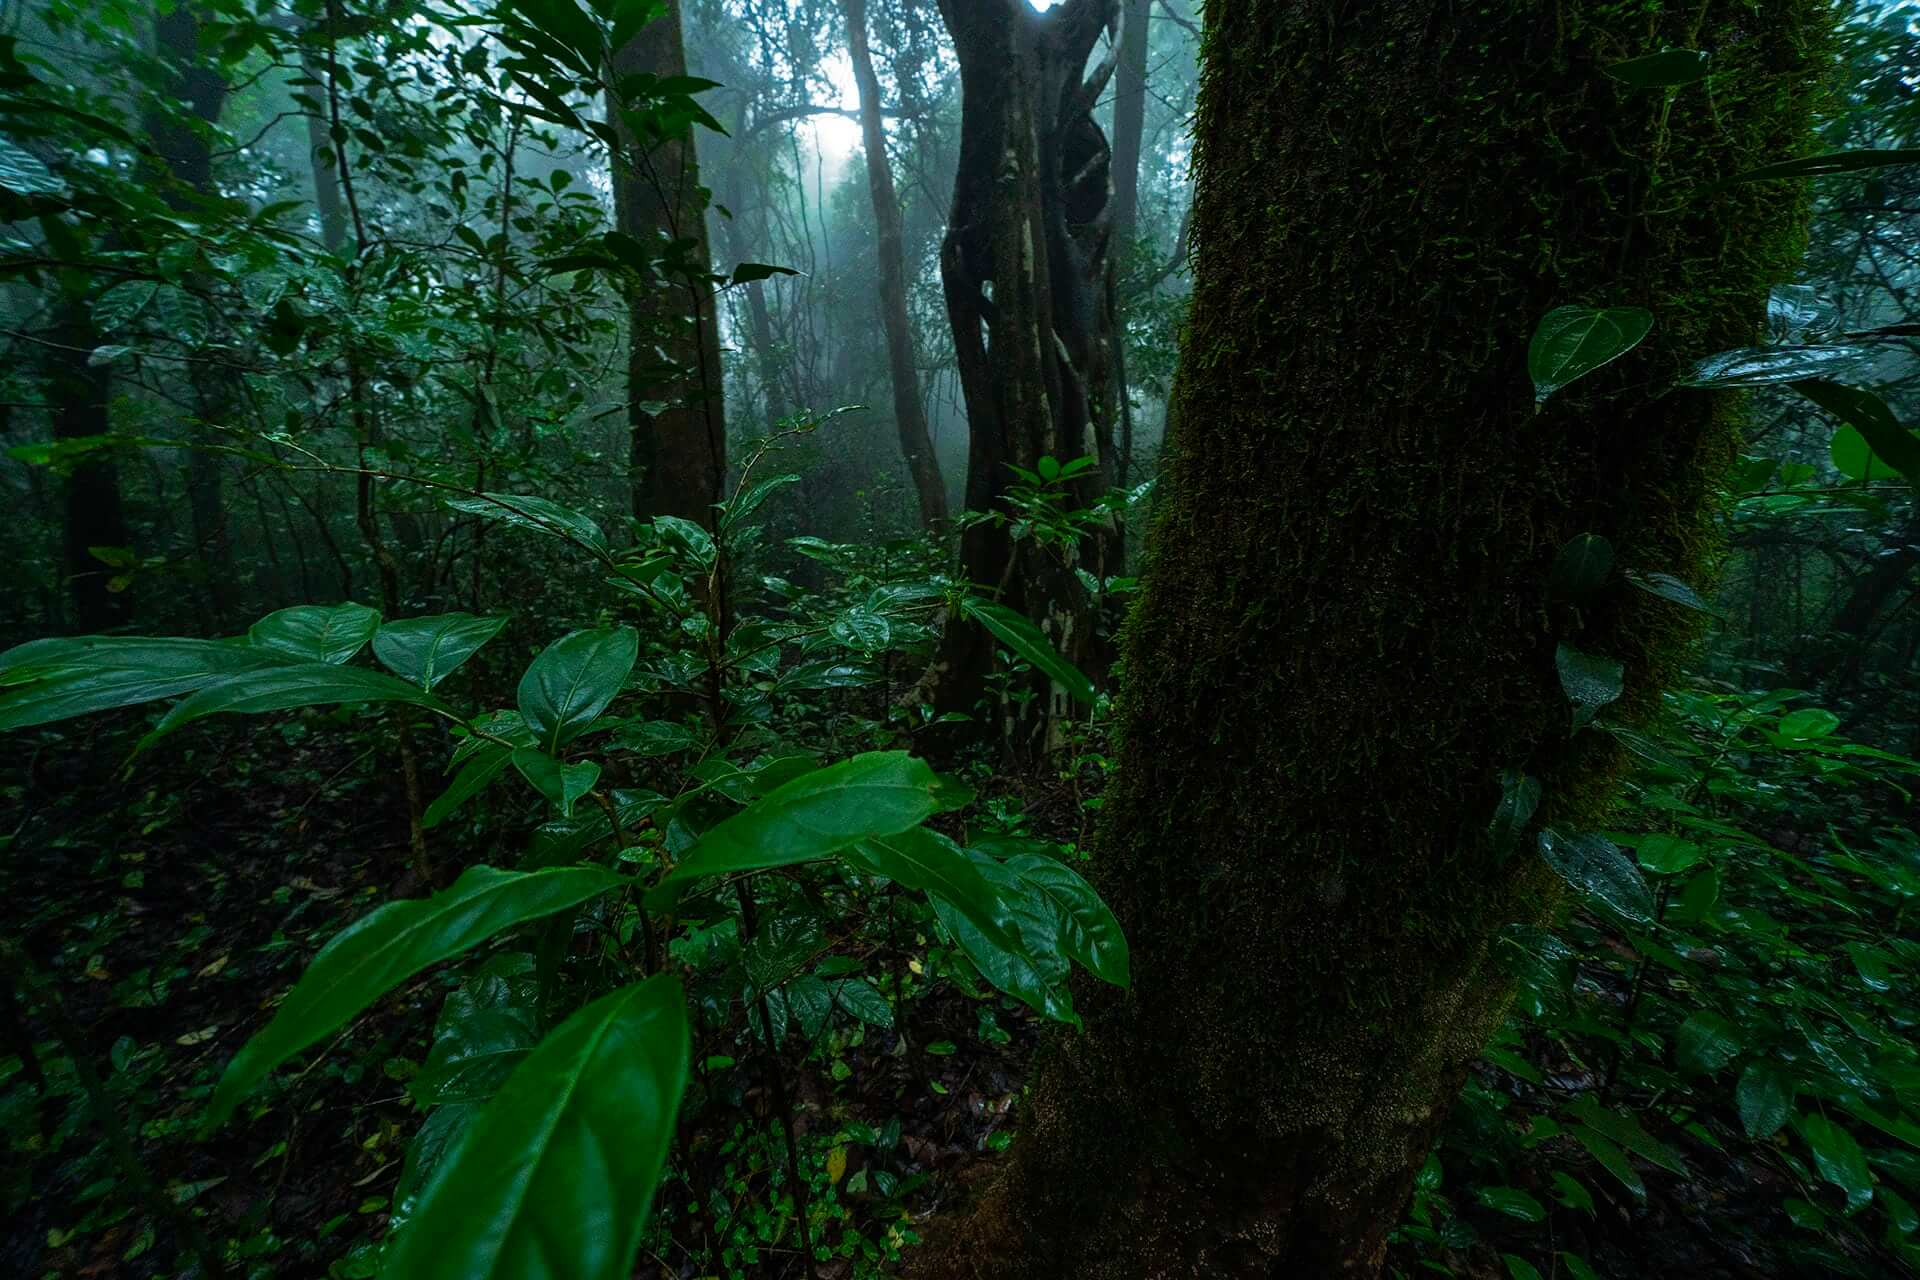 The forest around Amboli is predominantly semi-evergreen with a few patches that are still pristine and undisturbed. These support a rich and endemic biodiversity. Owing to increased tourism, many of these patches are littered with plastic waste and liquor bottles.